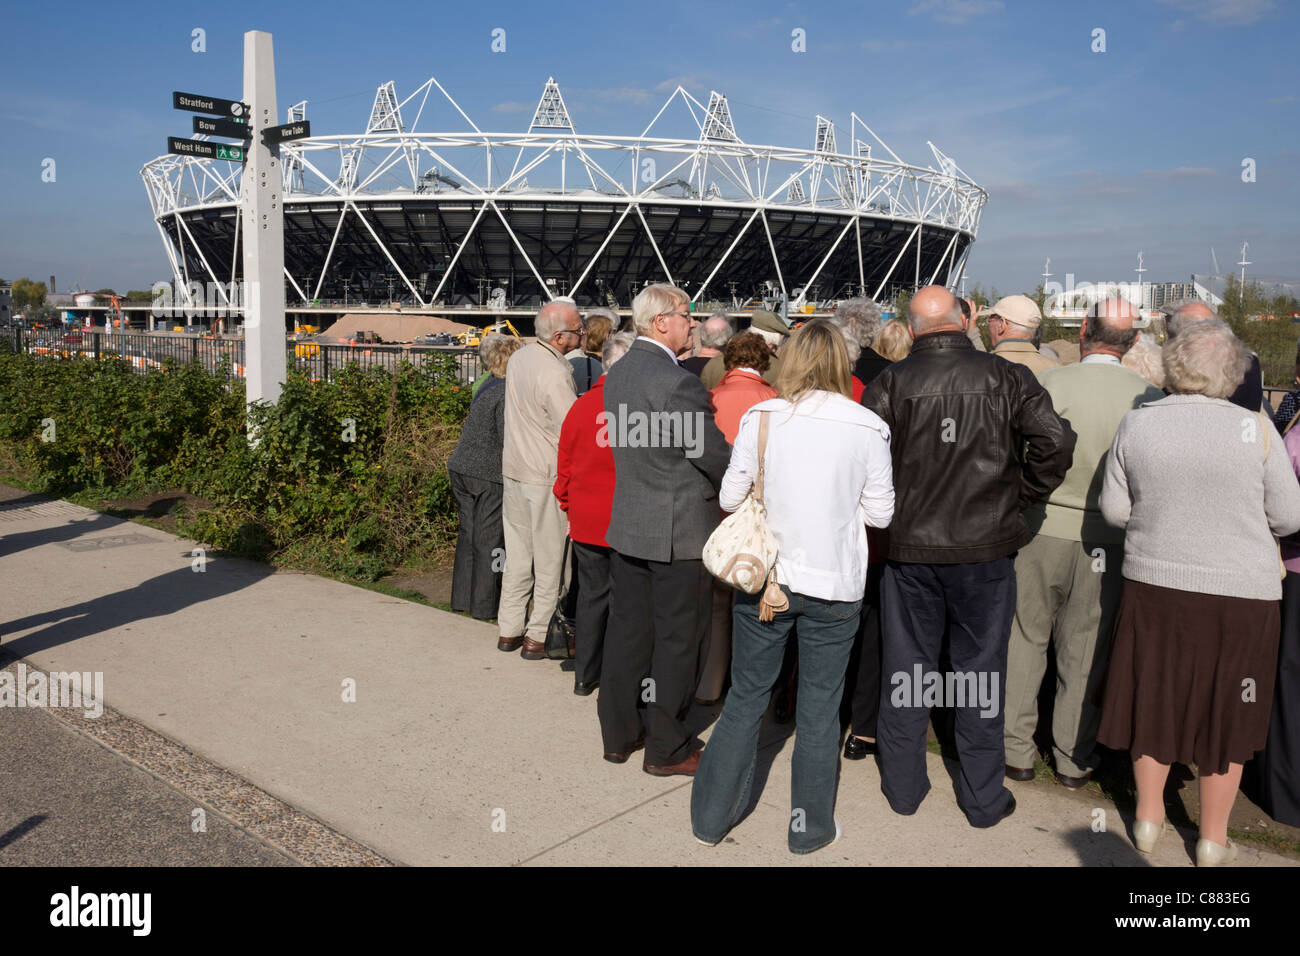 Visitors tour the Greenway the closest viewpoint to see the main stadium at the 2012 Olympic Park in Stratford. - Stock Image